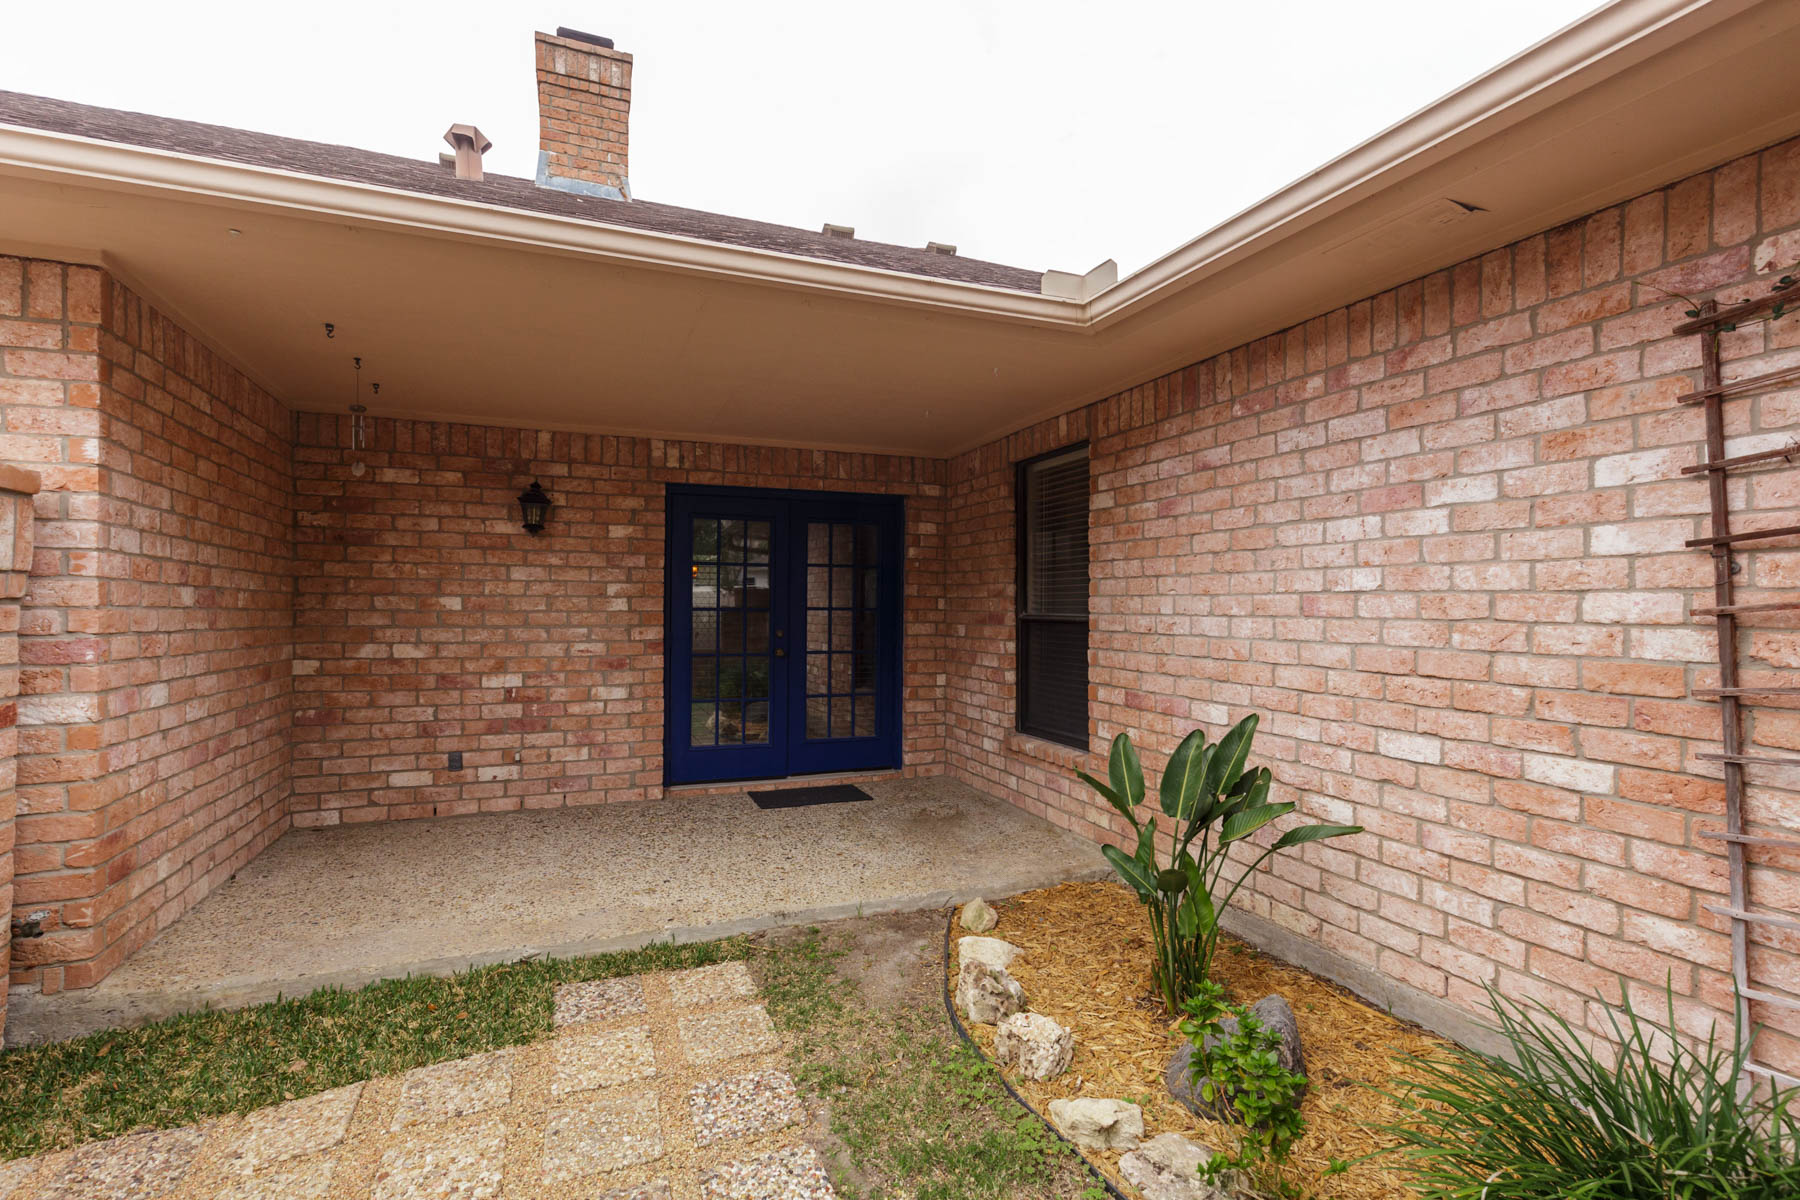 Additional photo for property listing at 7418 Thundersee Drive, Corpus Christi, TX 78413 7418 Thundersee Drive Corpus Christi, Texas 78413 United States